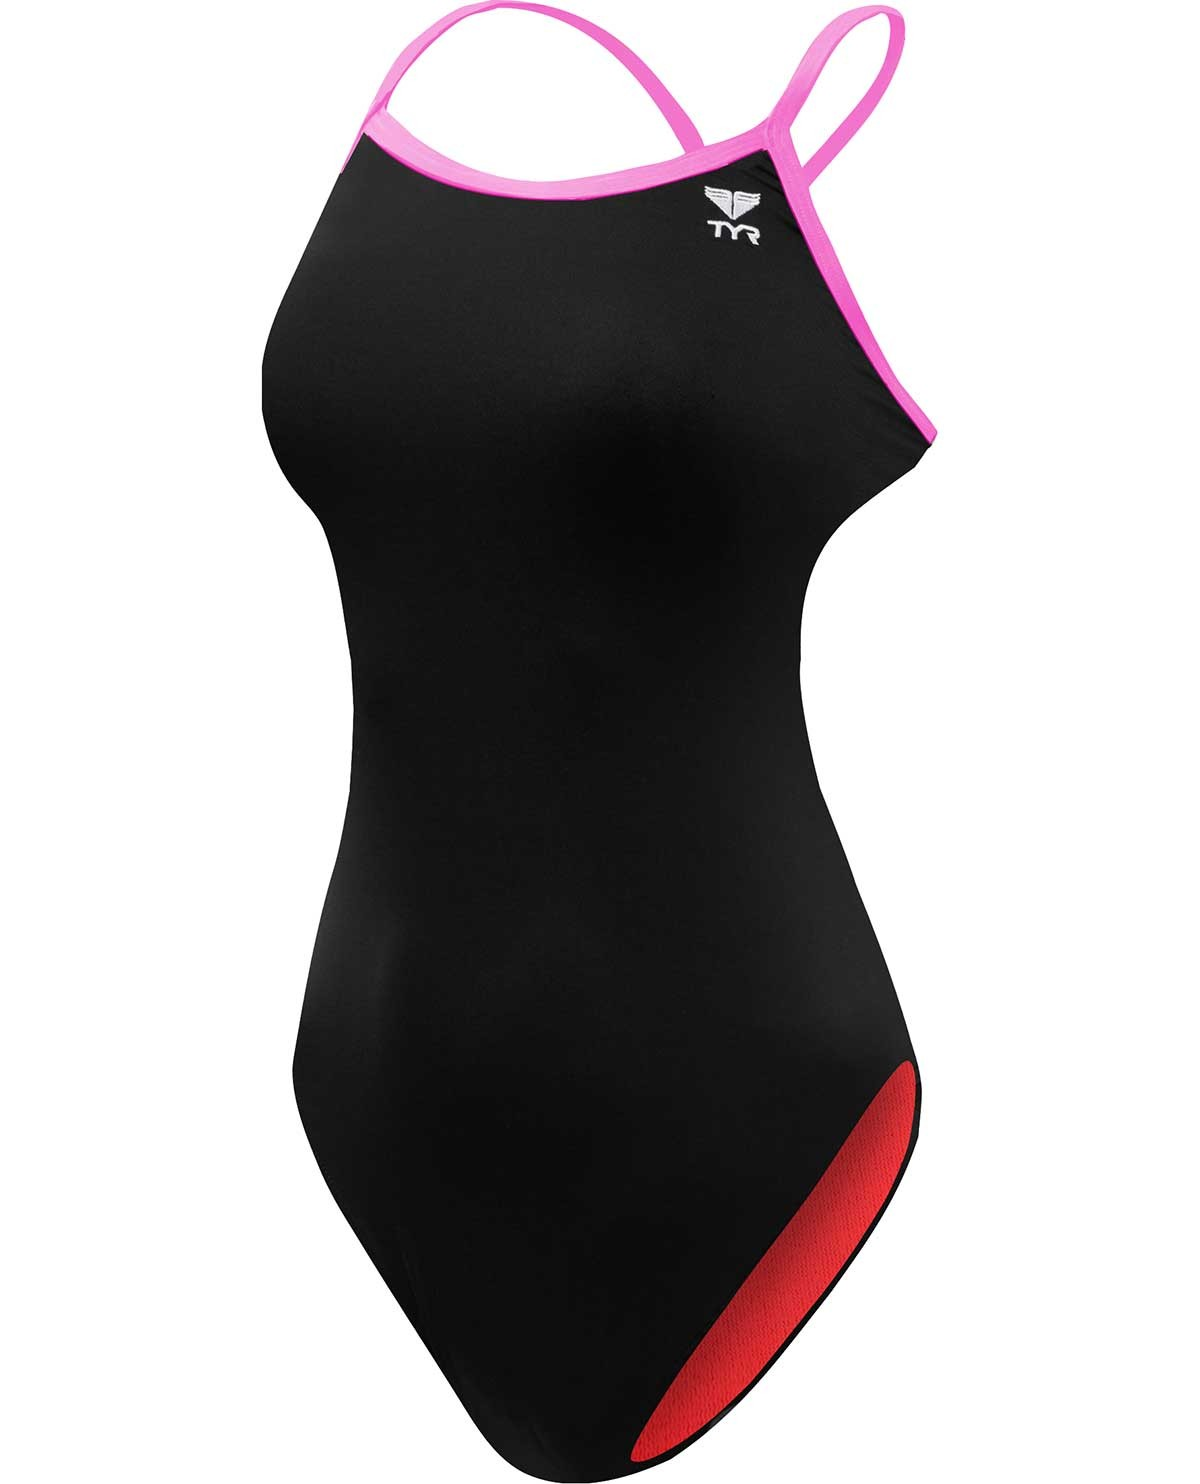 7f0f4f377a0ca Holiday Gifts for Women - TYR Women s Solid Trinityfit Swimsuit ...